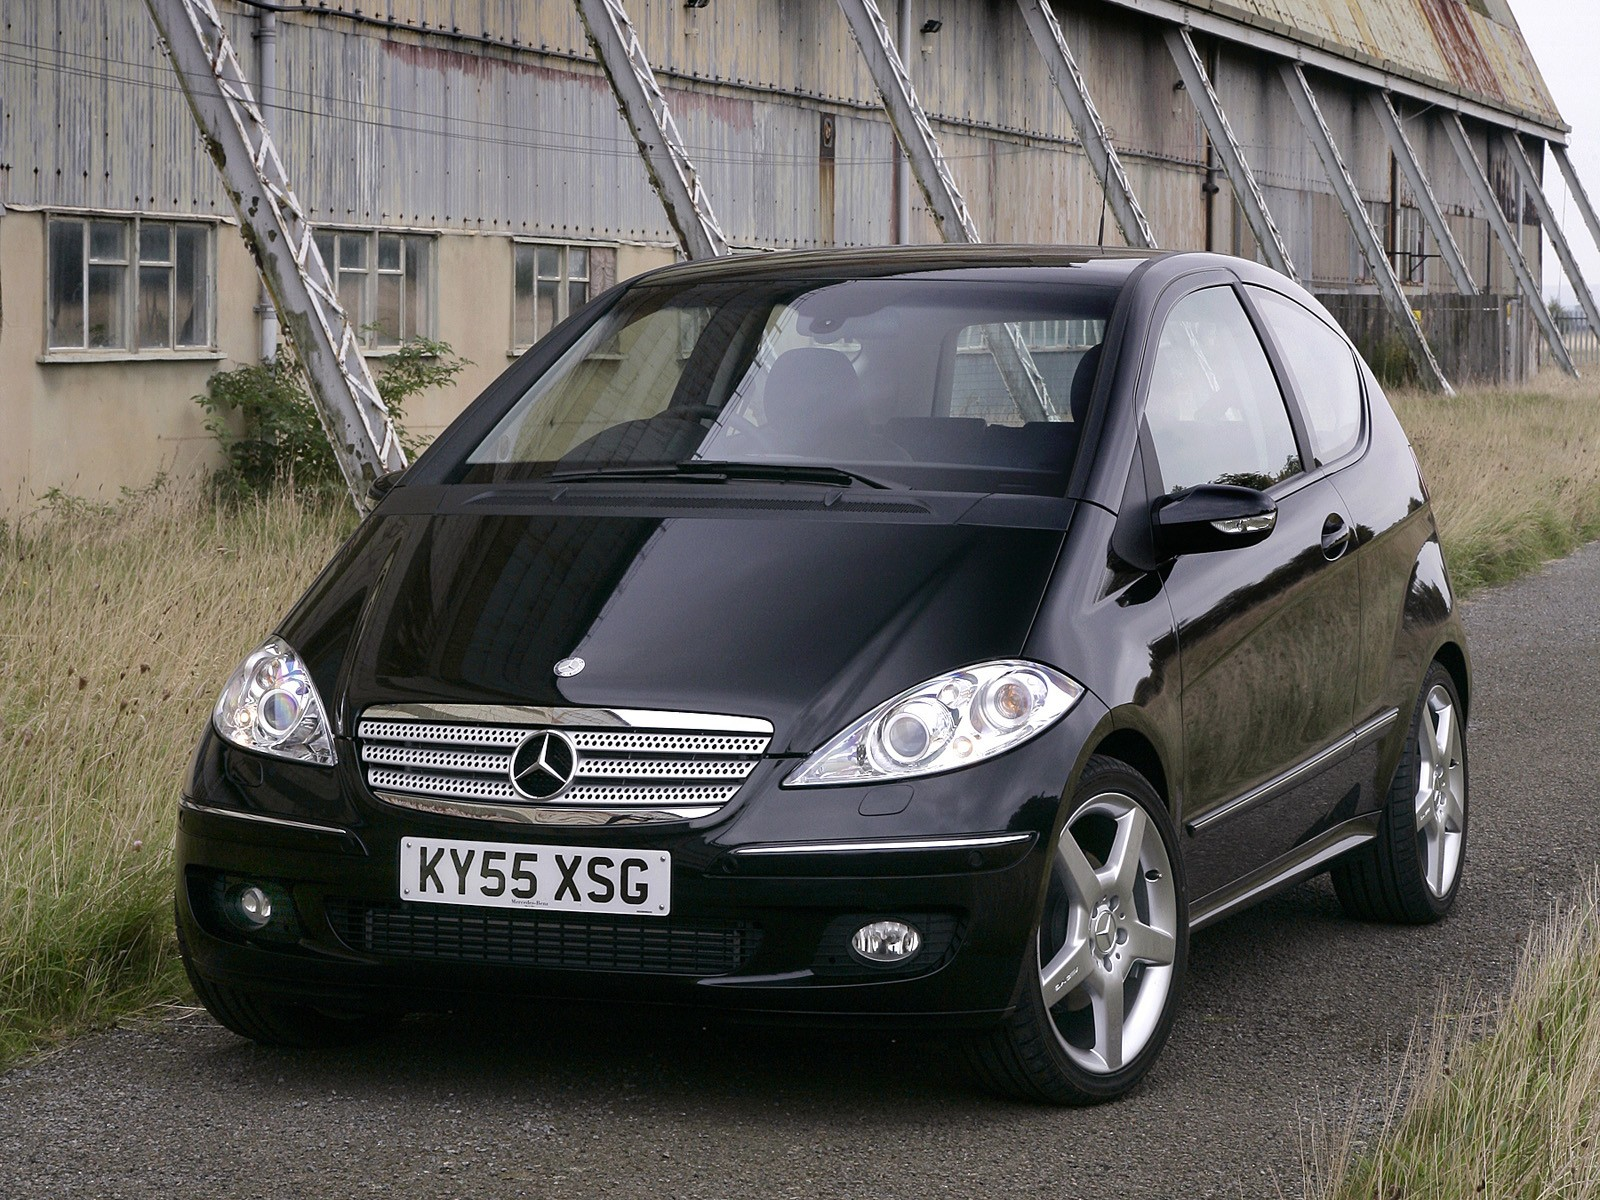 mercedes benz a klasse 3 doors w169 specs 2004 2005. Black Bedroom Furniture Sets. Home Design Ideas